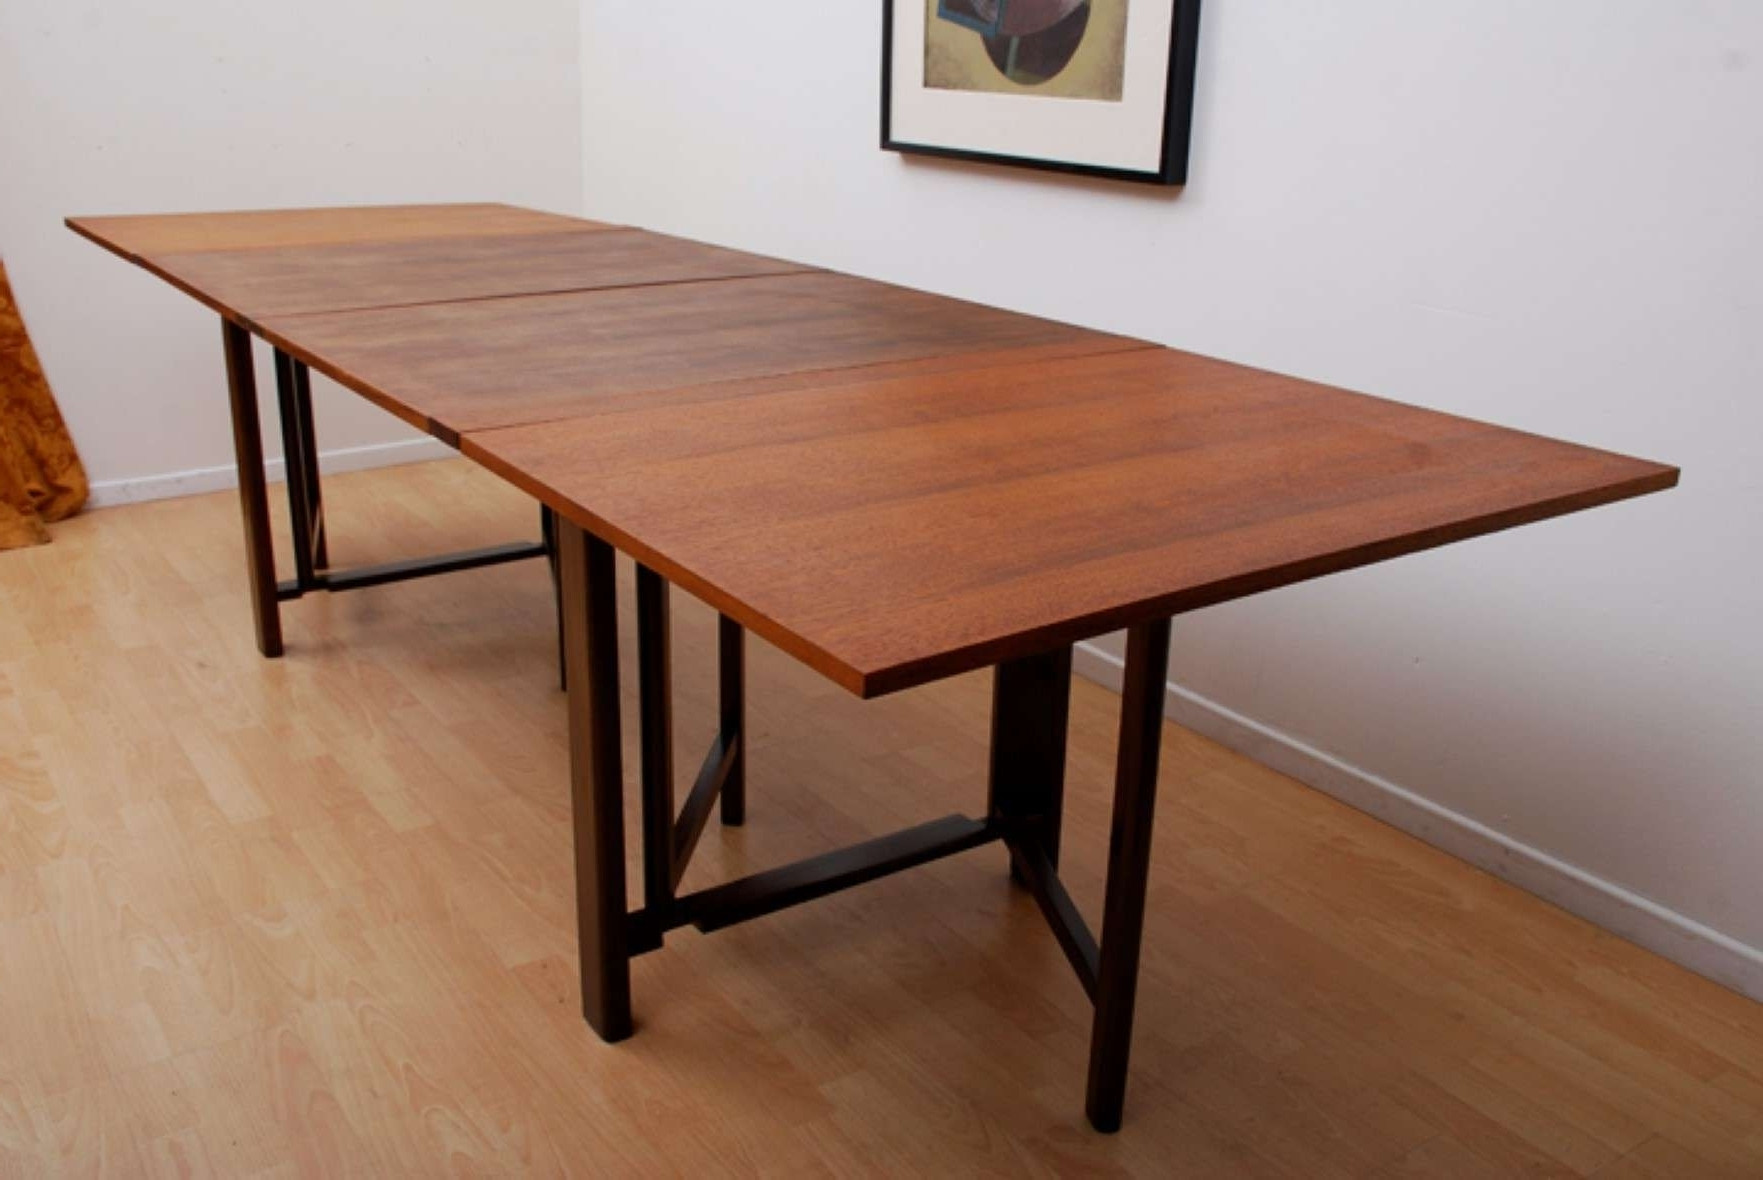 Folding Dinner Table  Folding Dining Table And Chairs Ideas — The Homy Design